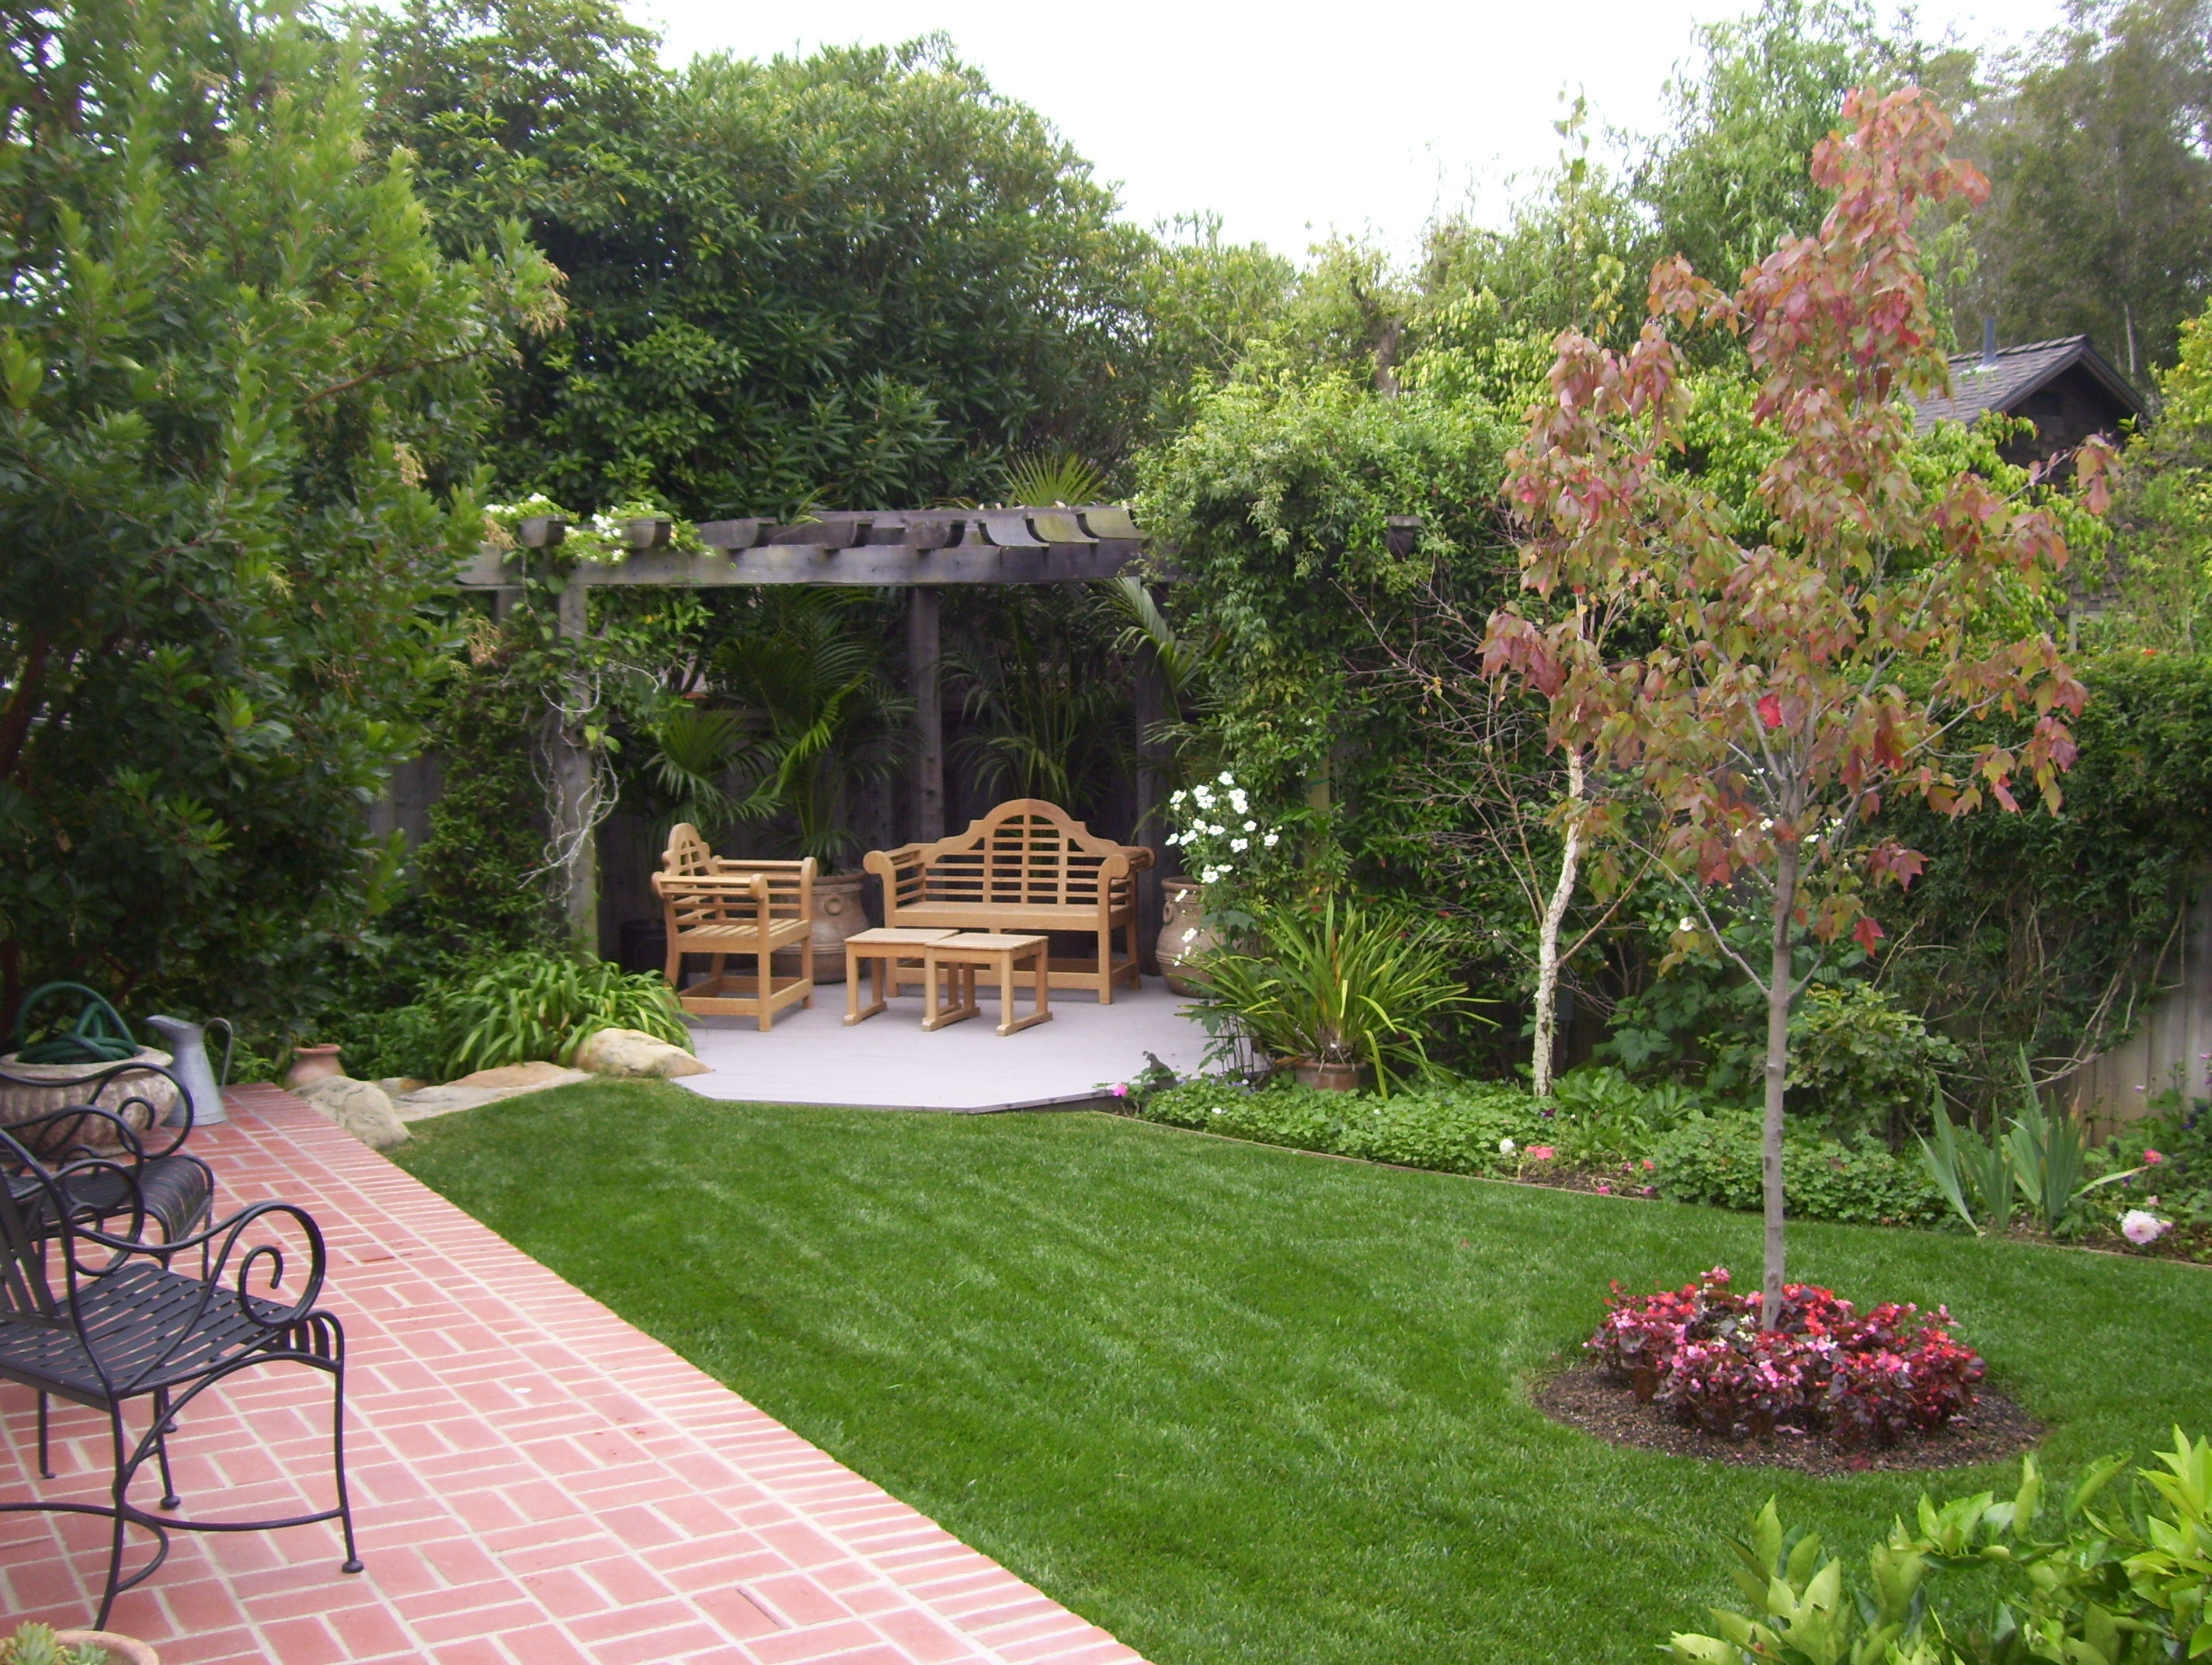 Vertical Garden Design With Gazebo Installation Freestanding Pergolas Backyard Pergola in Santa Barbara